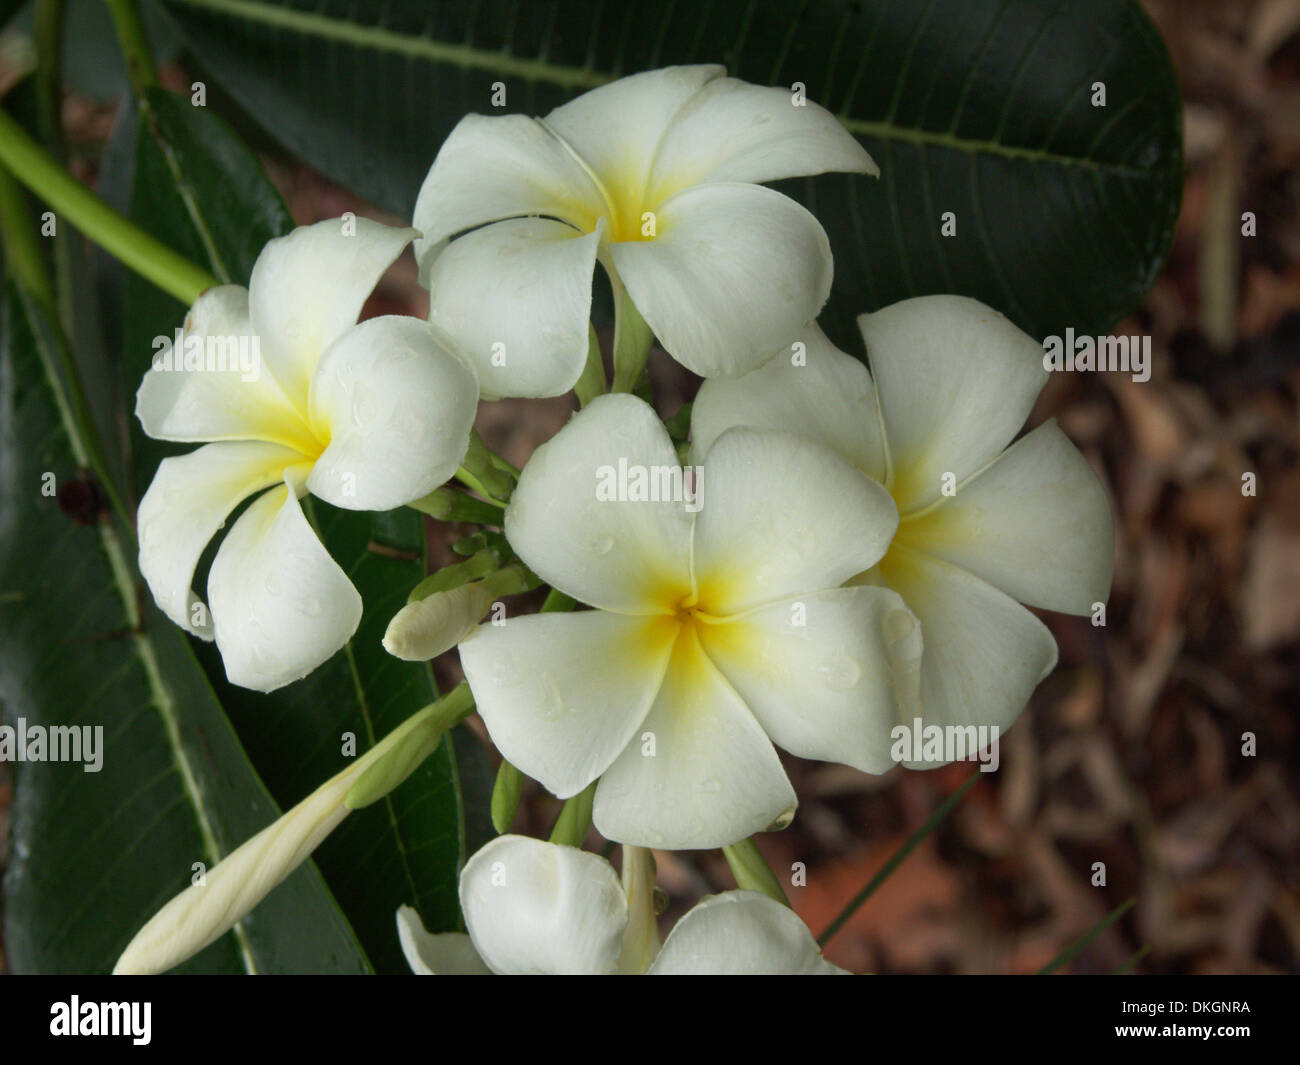 Cluster Of White Frangipani Flowers With Yellow Centres Plumeria